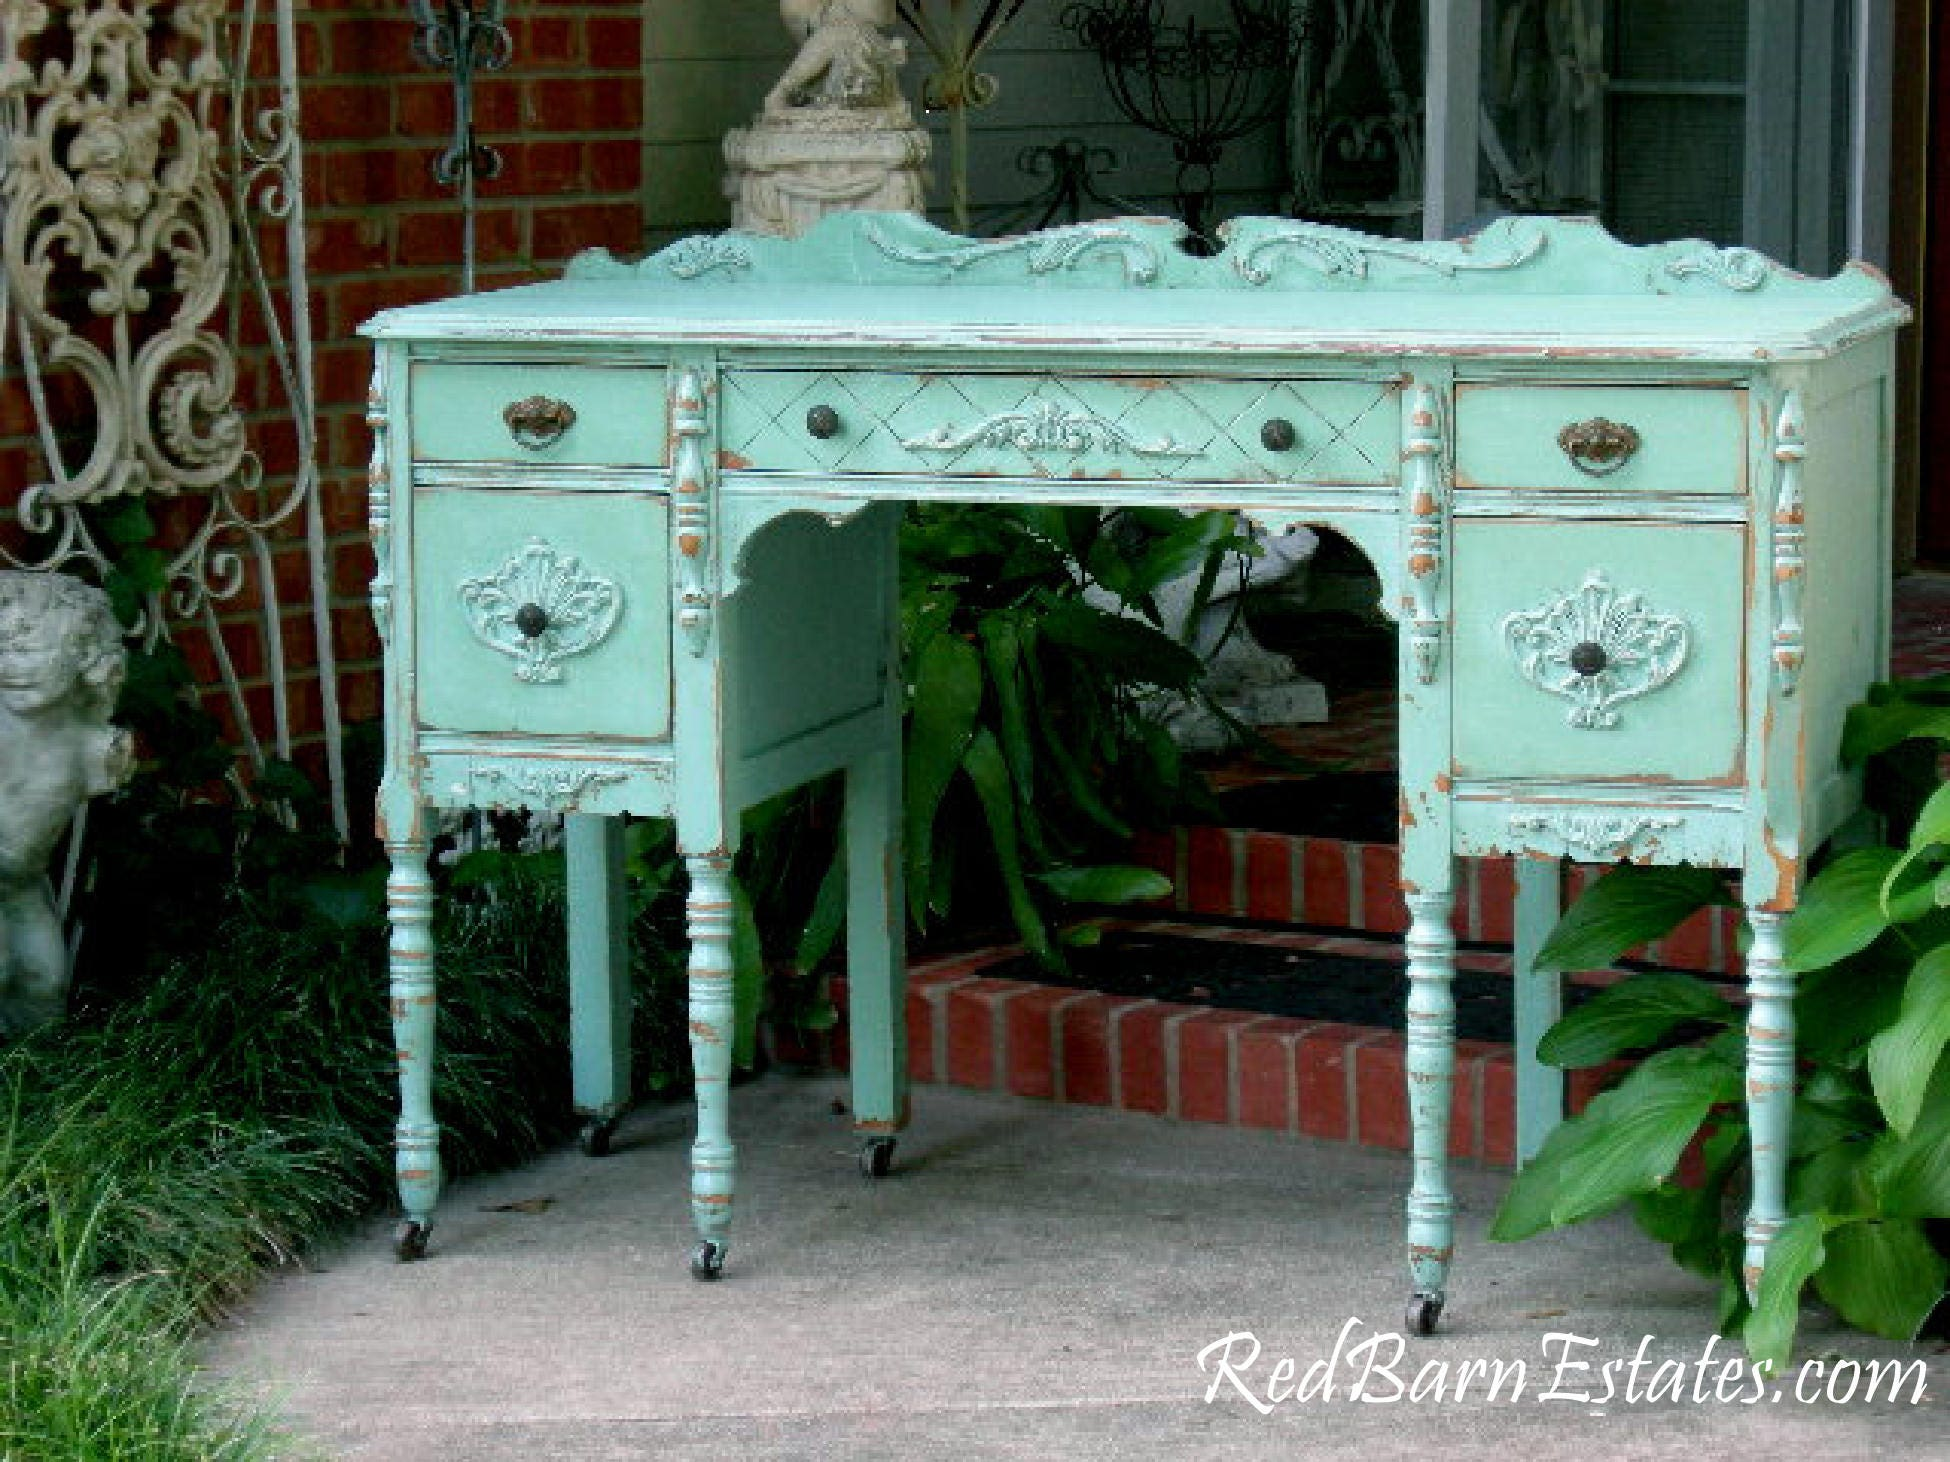 ANTIQUE DESK Custom Refinished To Order! Hand Painted Reclaimed Restored  Wood Shabby Chic Painted Ladyu0027s Desk